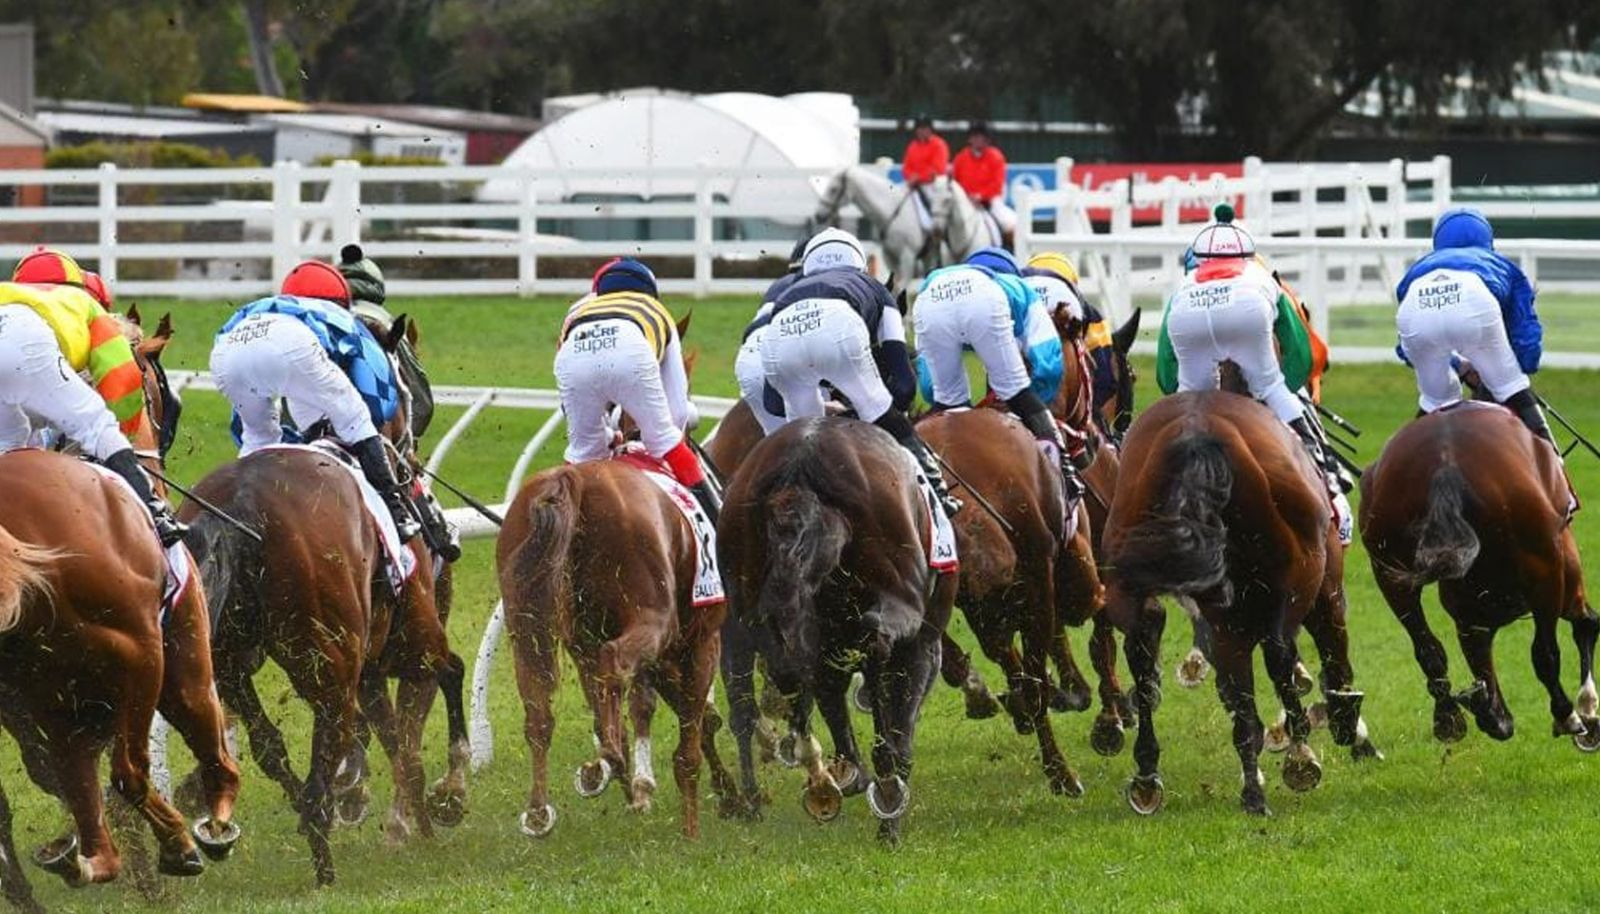 Fantasy Horse Racing Tips: Saturday June 29th 2019